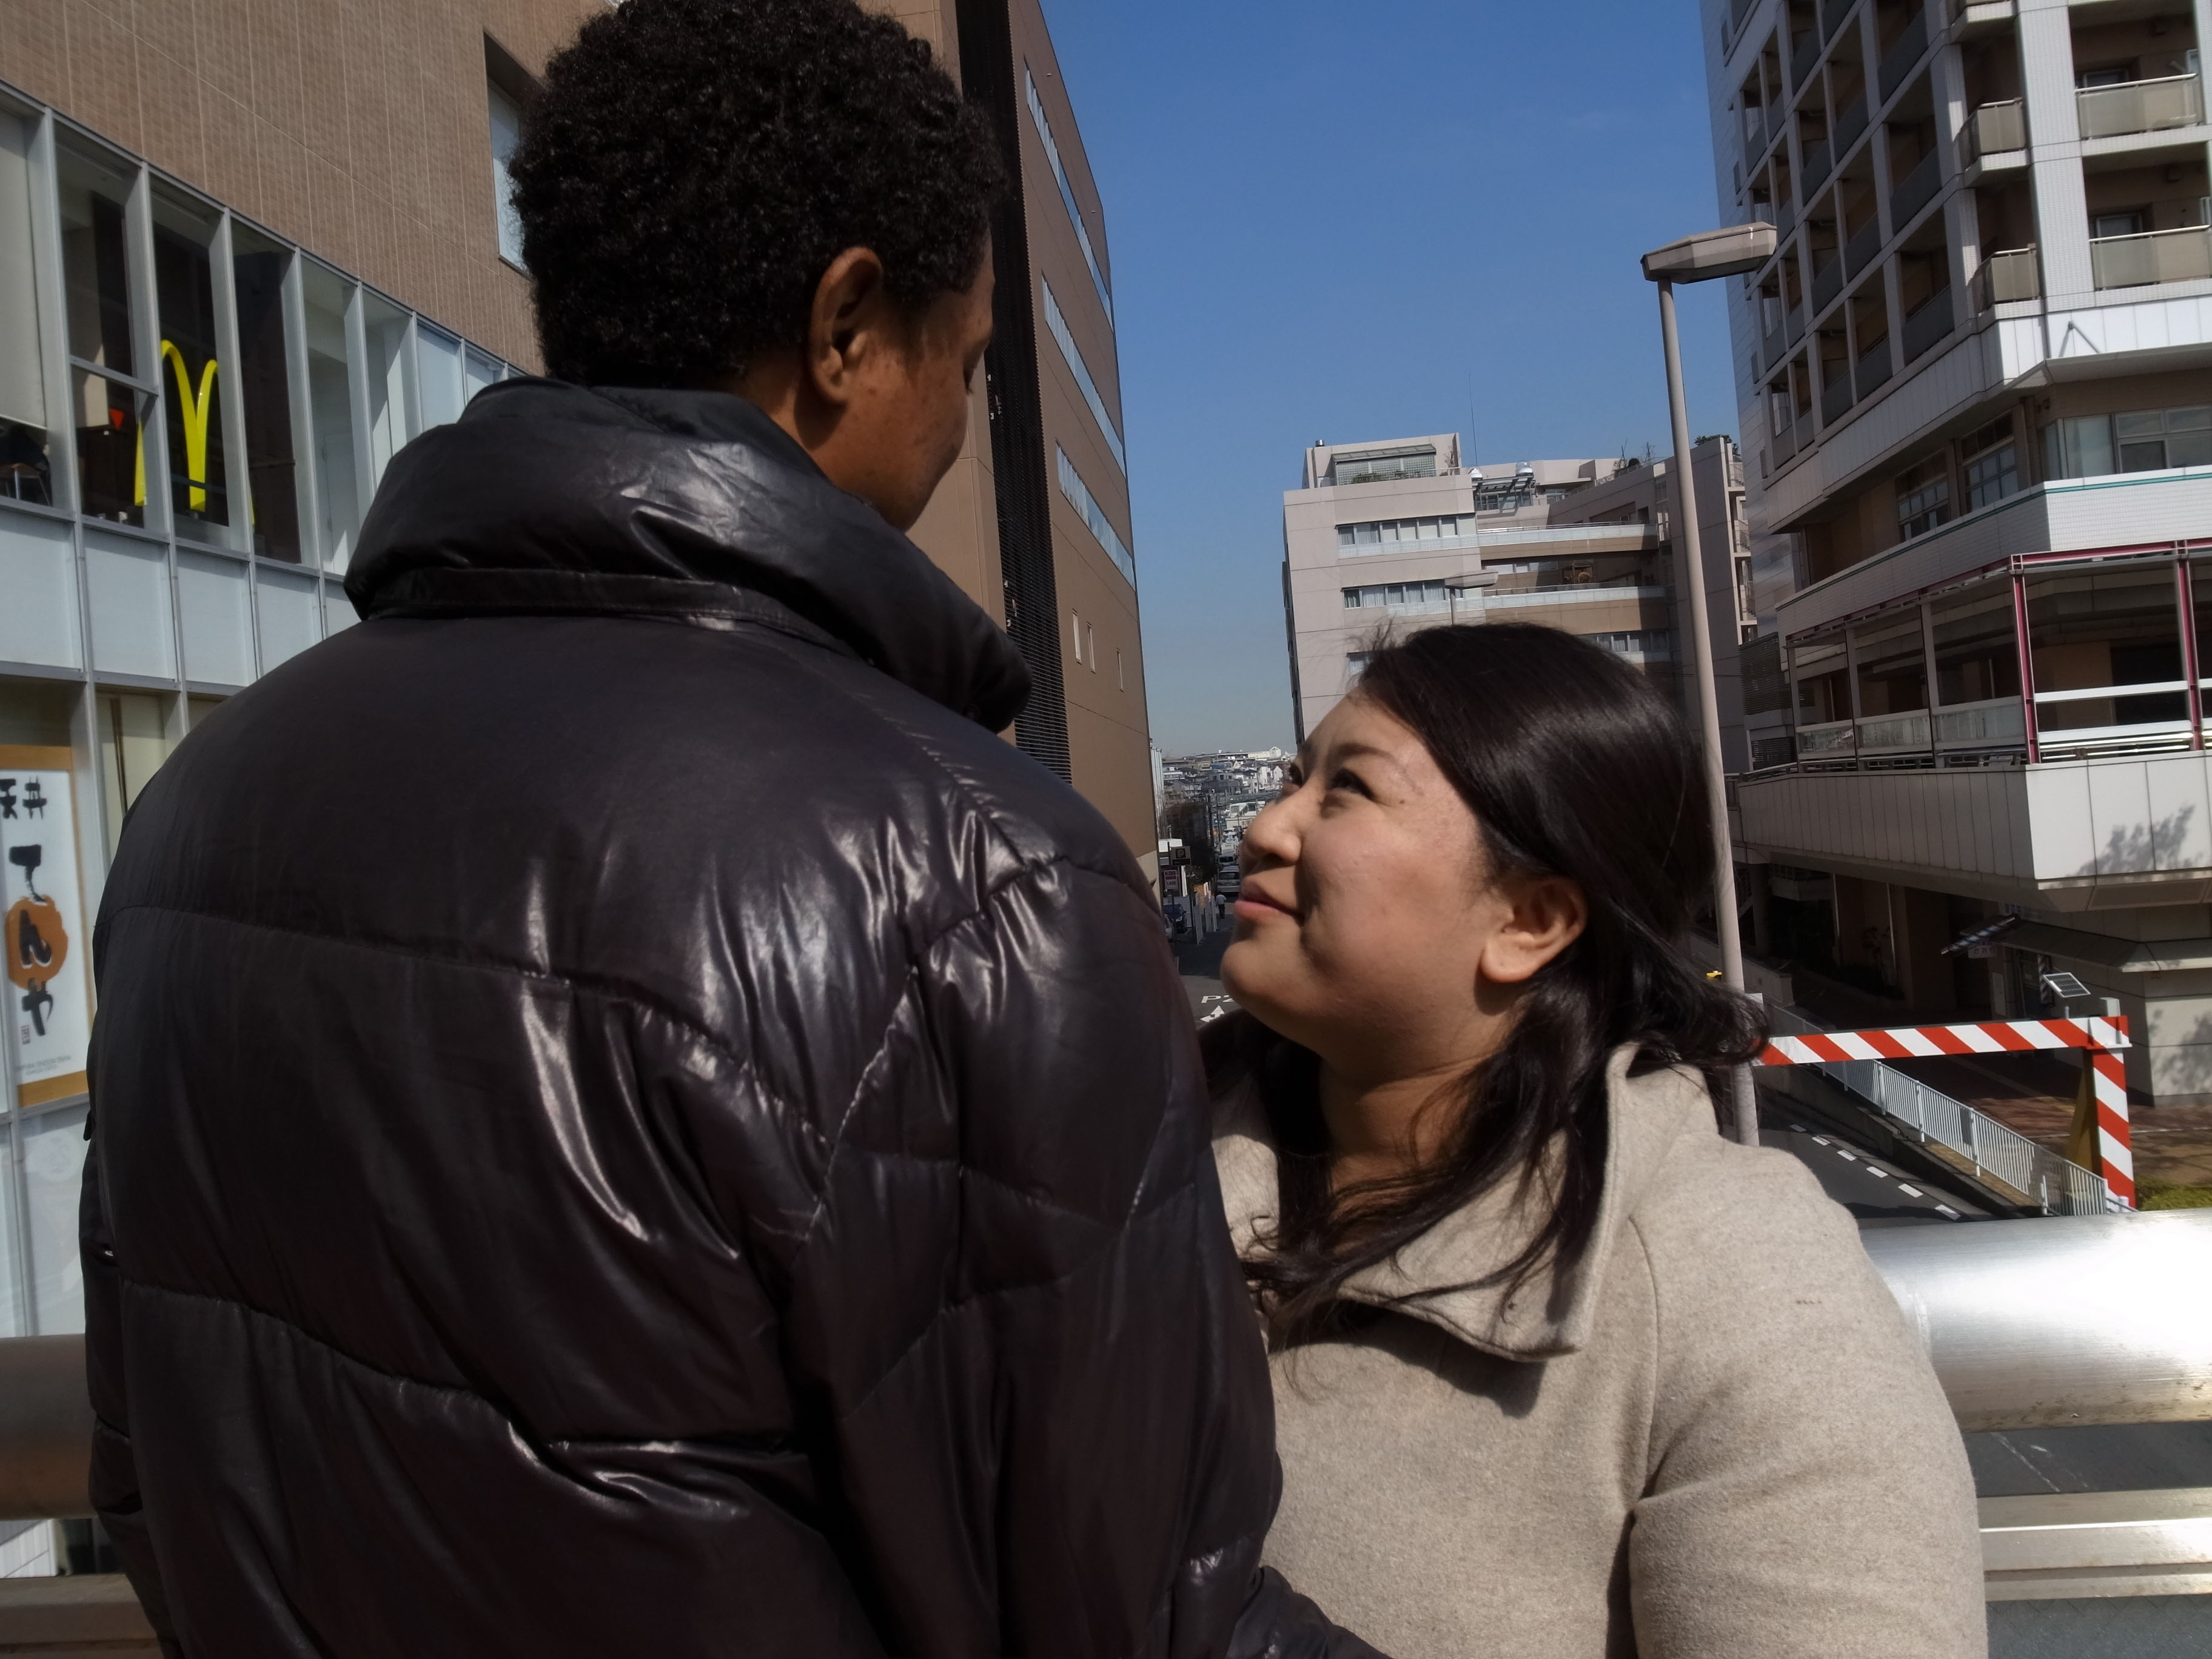 Free hugs: Snow Hanada can hold her Dominican husband now that he is on provisional release from the East Japan Immigration Center in Ushiku, Ibaraki Prefecture, where he was held for seven months after overstaying his visa. Now she wants to help other families going through the same separation ordeal. | SUMIE KAWAKAMI